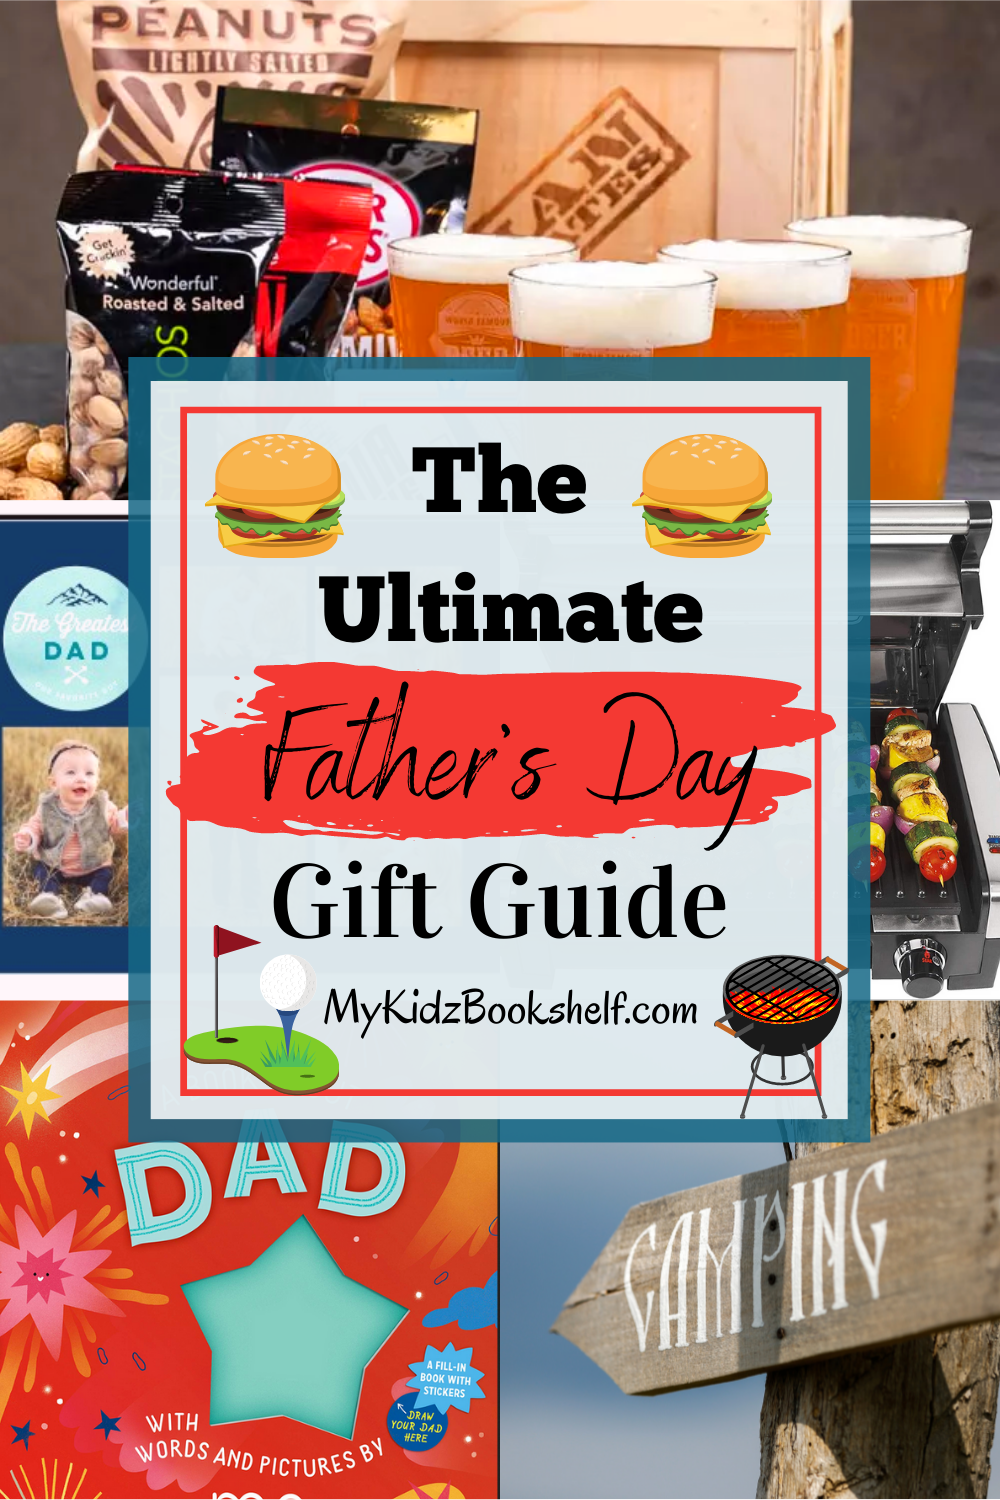 25 Best Father's Day Gift Guide Ideas Gifts for Guys special men in your life